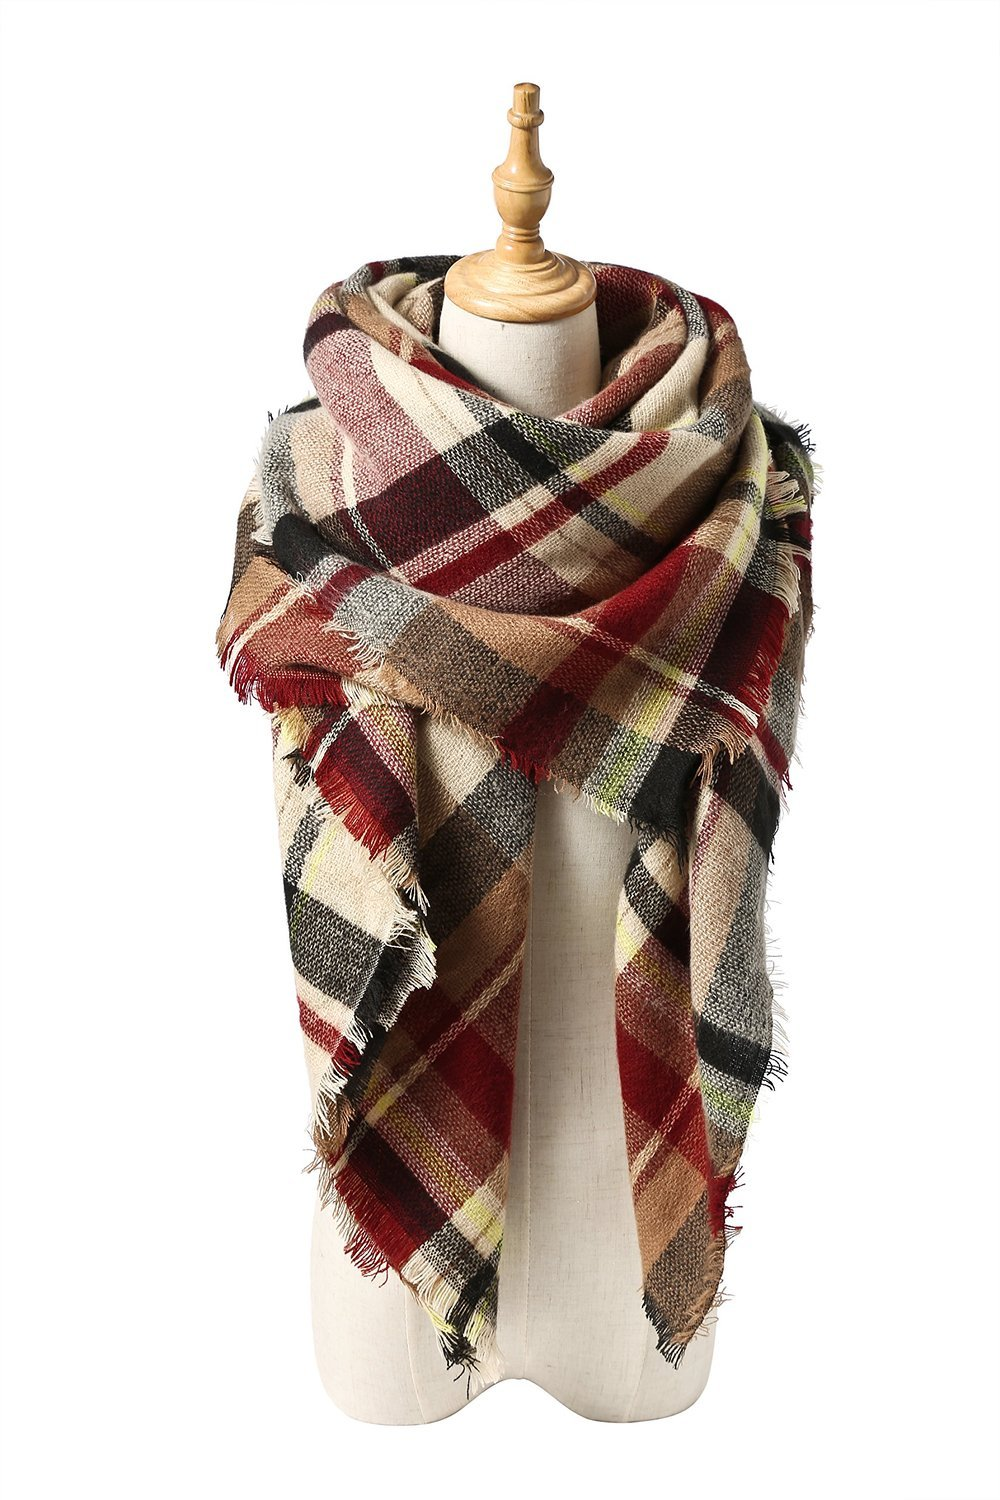 Spring Fever Soft Lightweight Plaid Blanket Acrylic Cashmere Feel Elegant Scarf A04